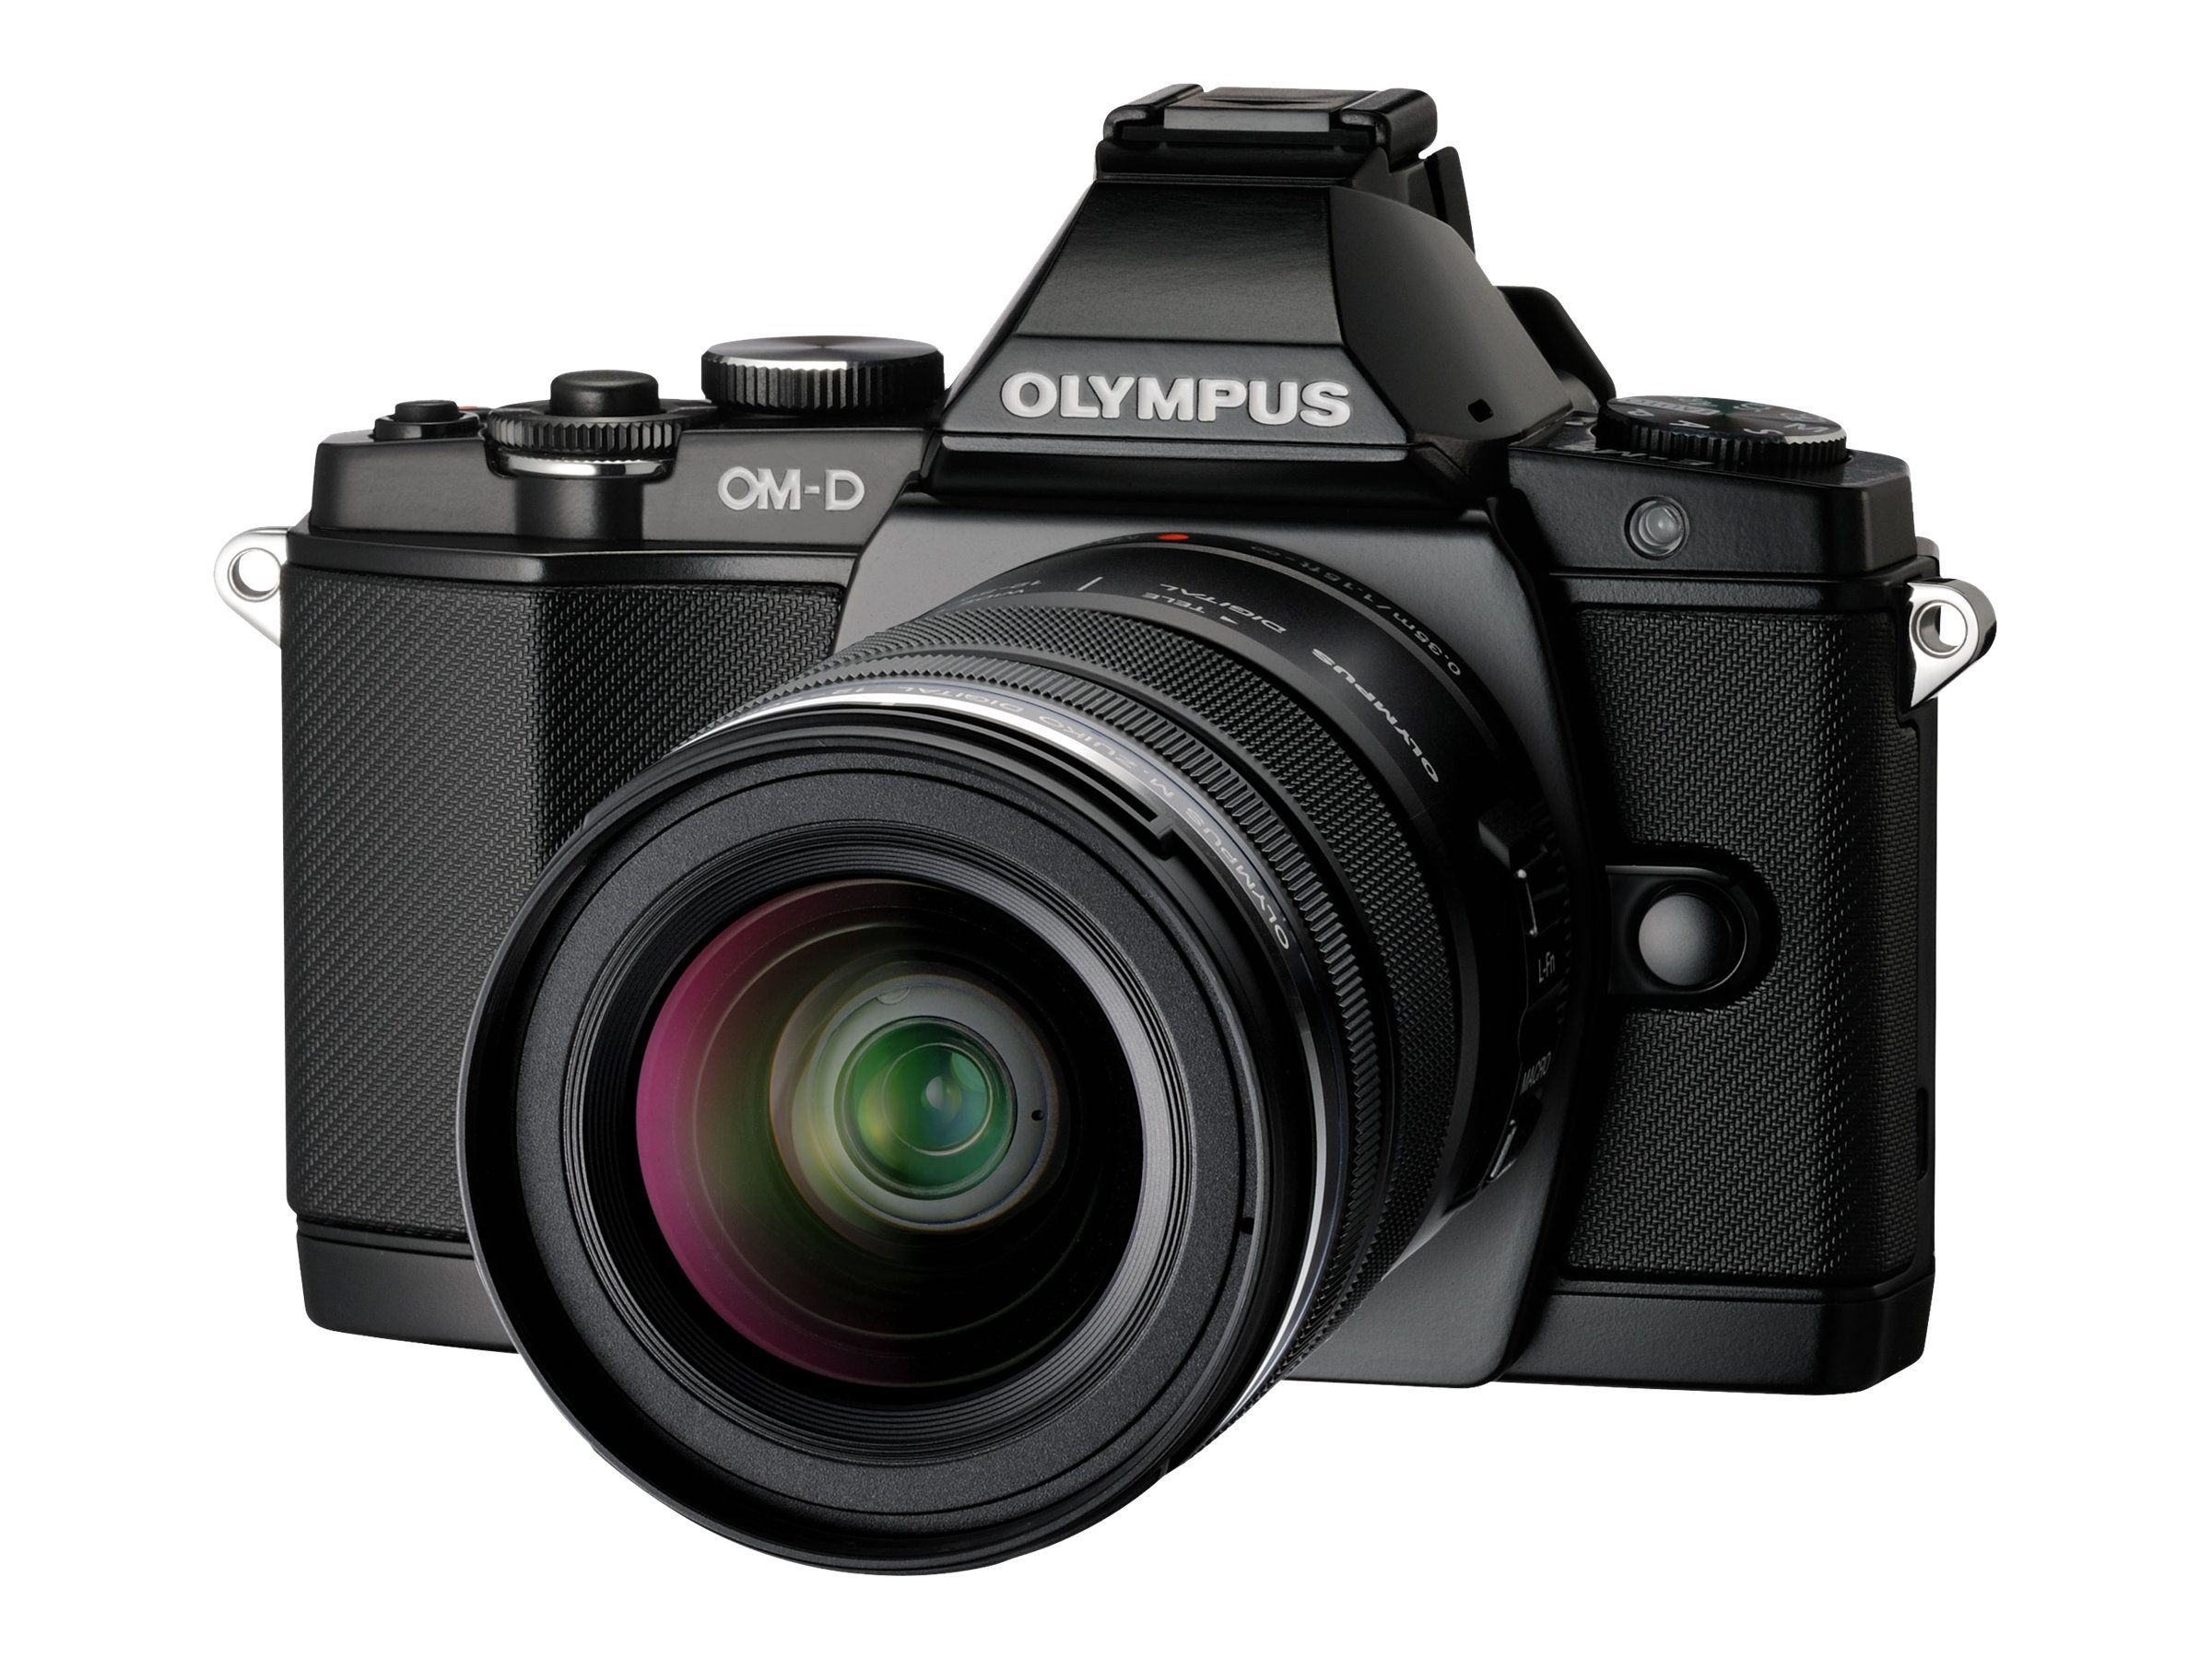 Olympus OM-D E-M5 Micro Four Thirds Digital Camera with 14-42mm Lens, Black, V204041BU000, 13819912, Cameras - Digital - SLR